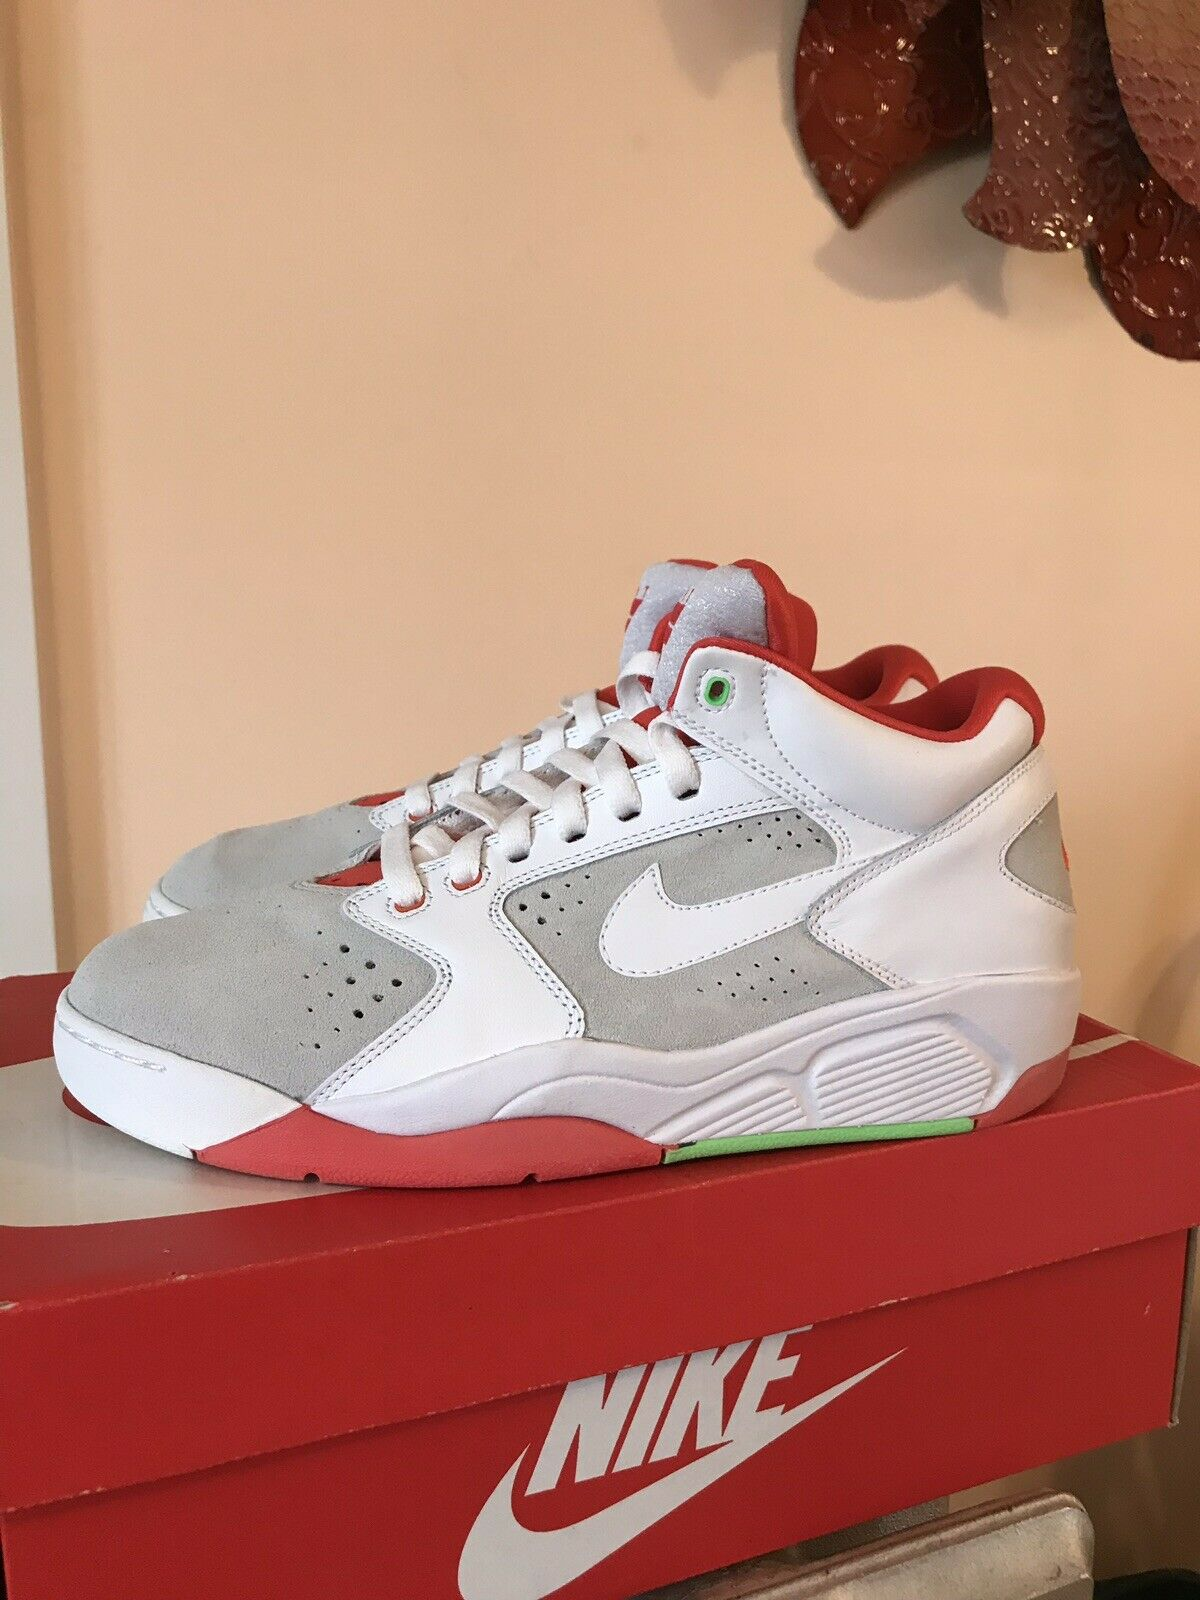 Nike Air Flight Lite 15 Hare Scottie Pippen Size 9.5